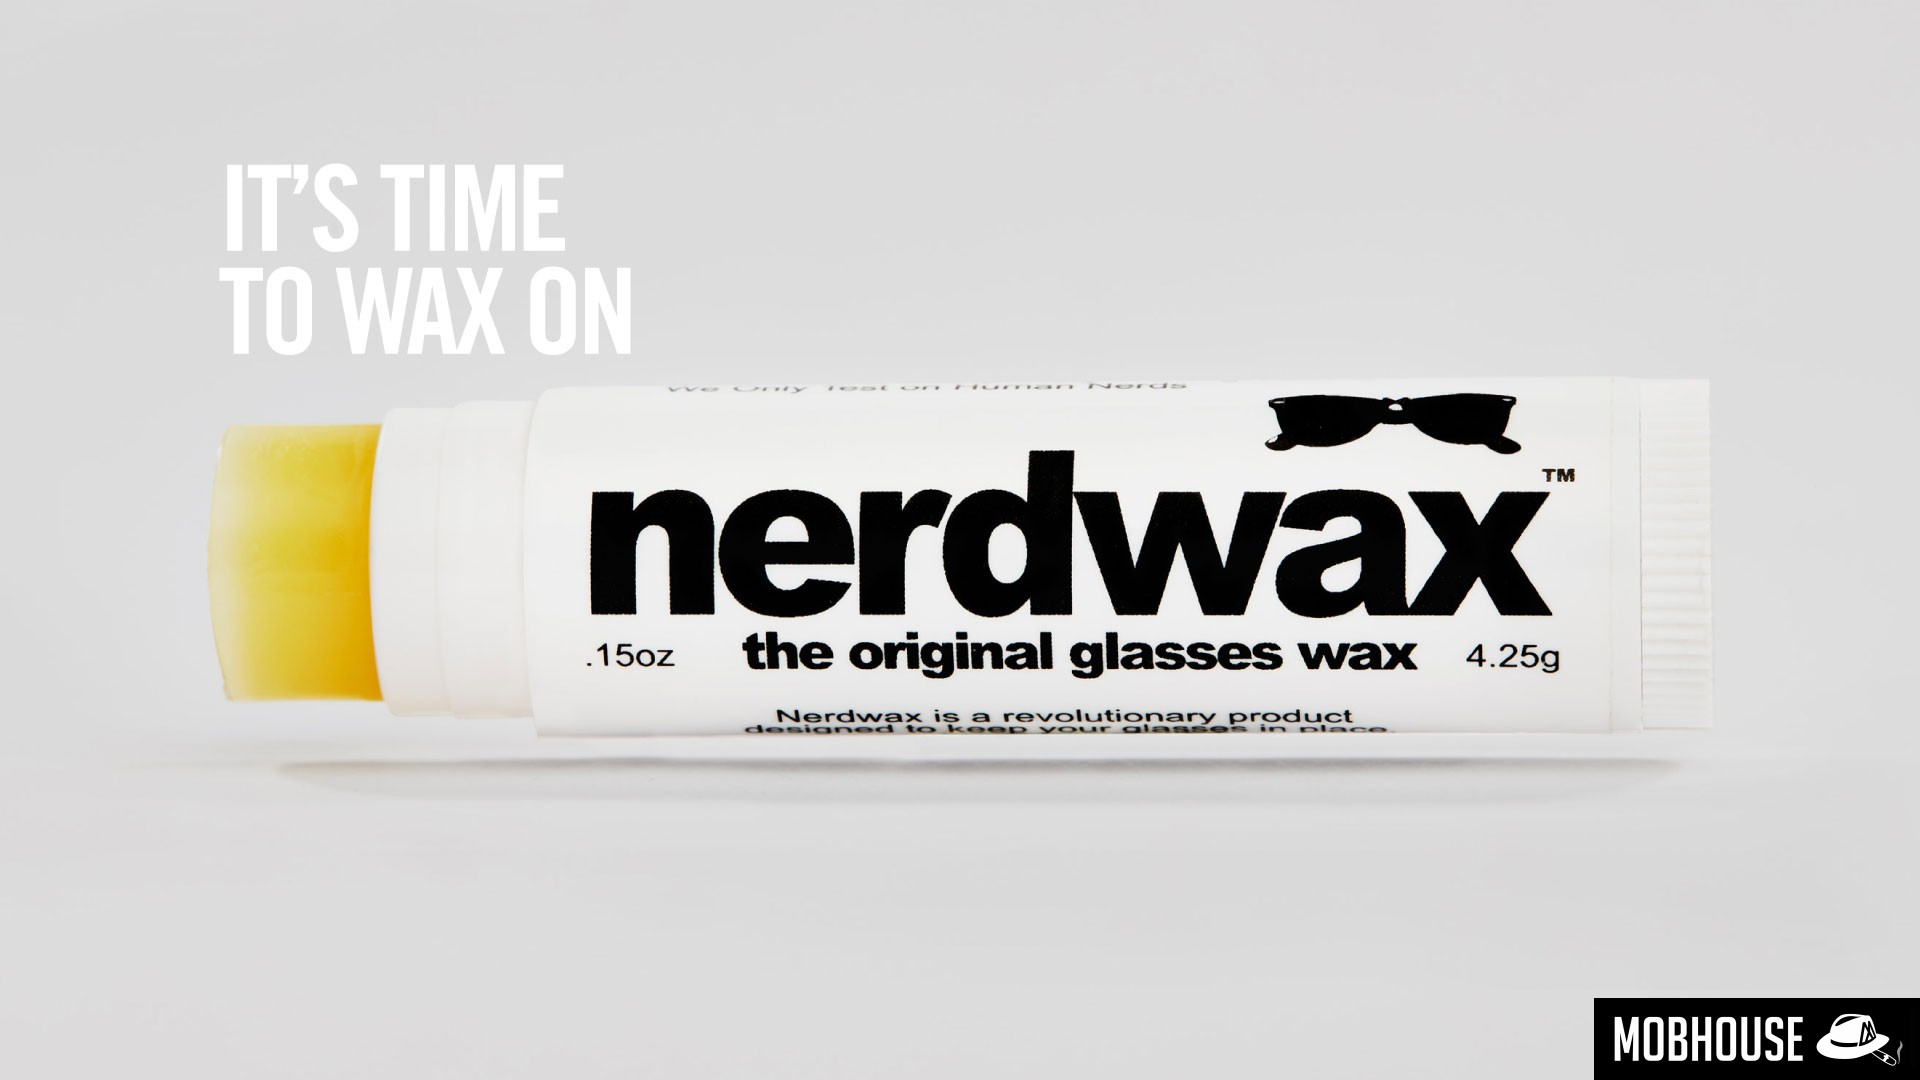 Nerdwax (Mobhouse productions)